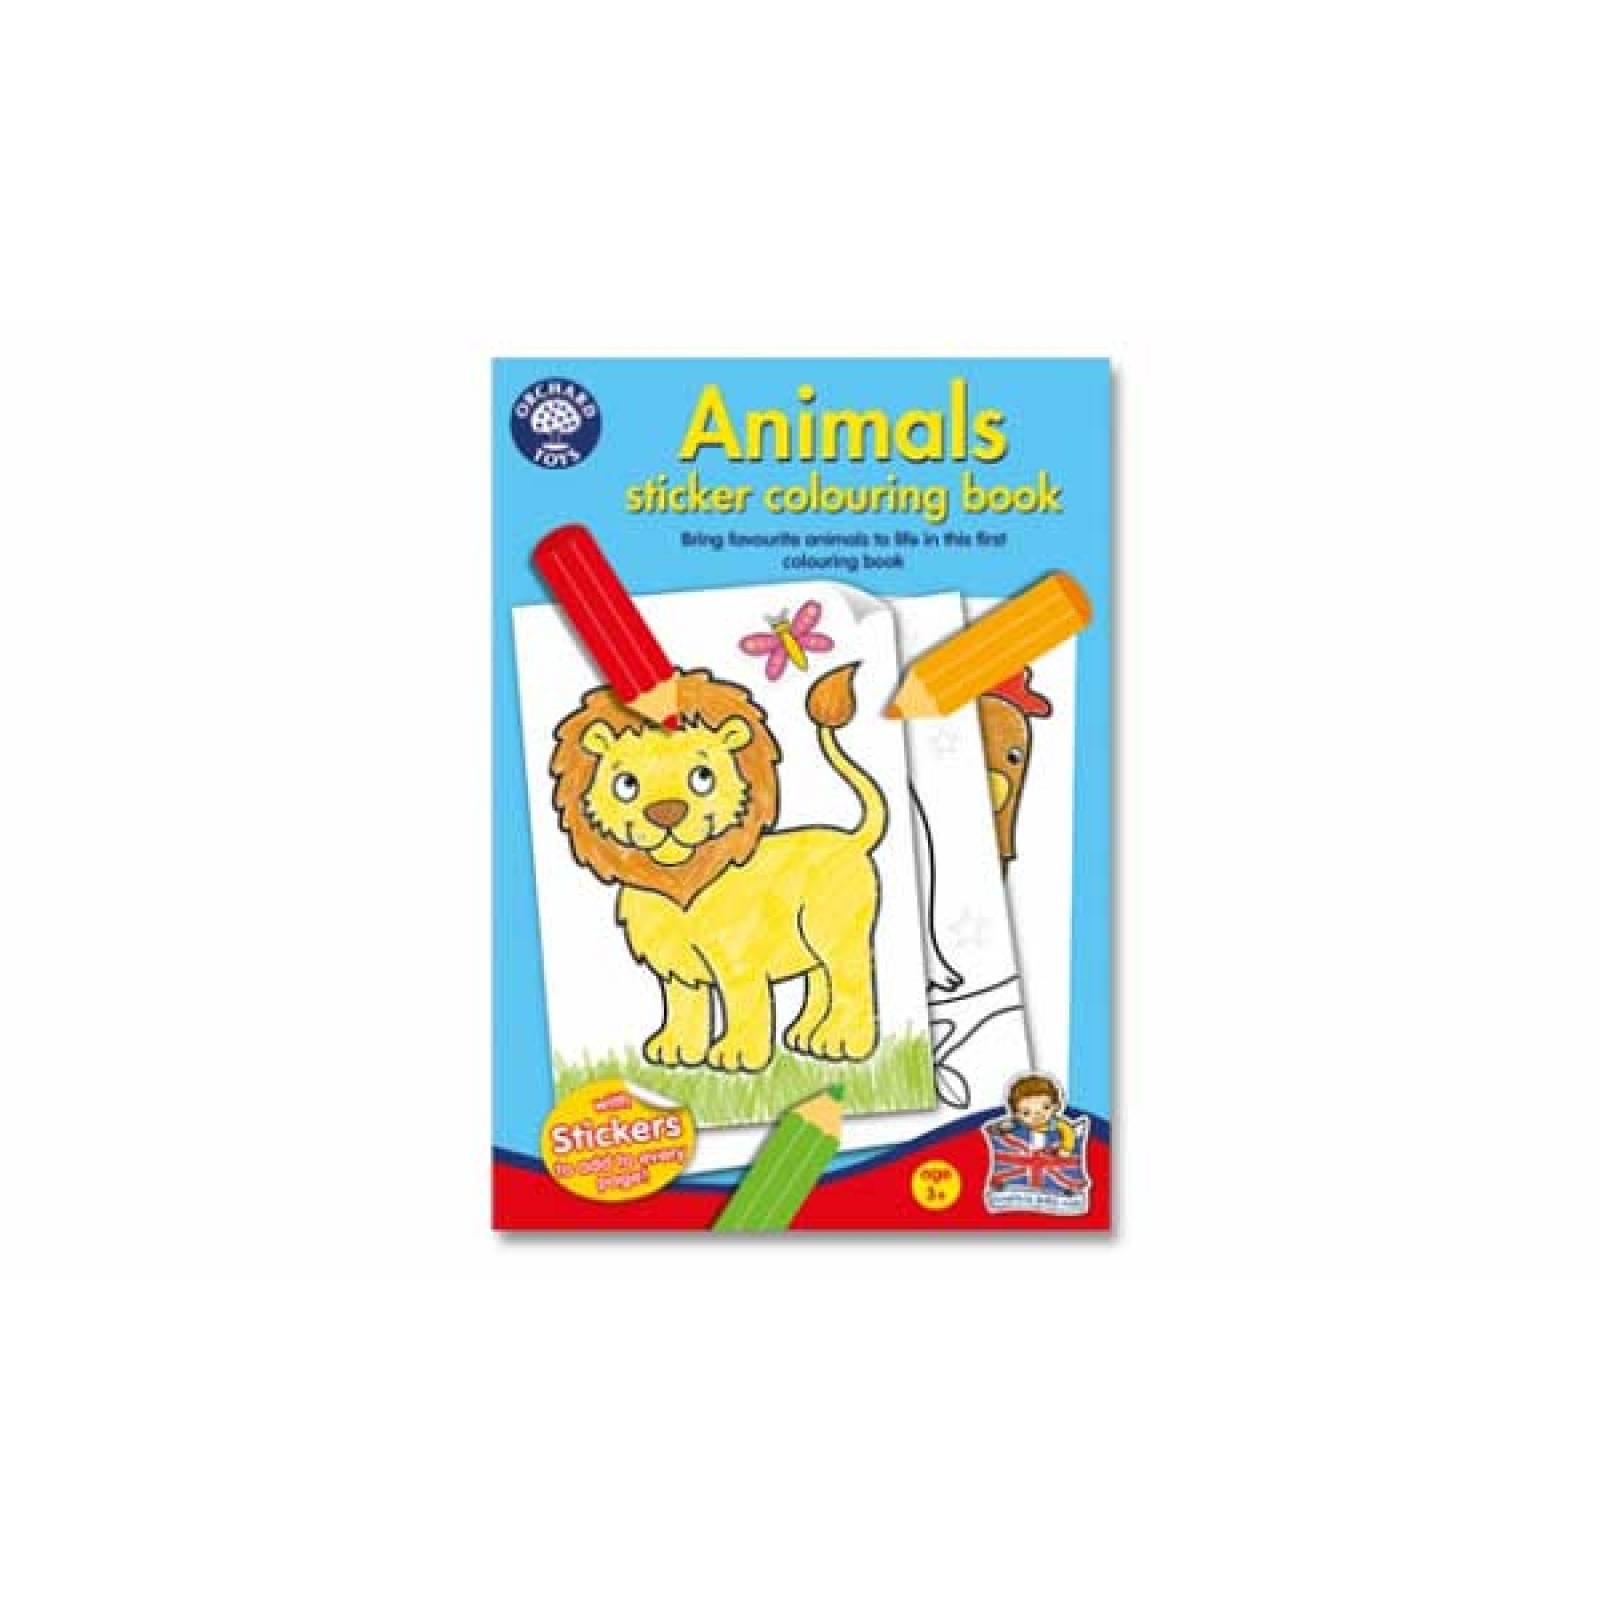 Animals Sticker Colouring Book By Orchard Toys 3+